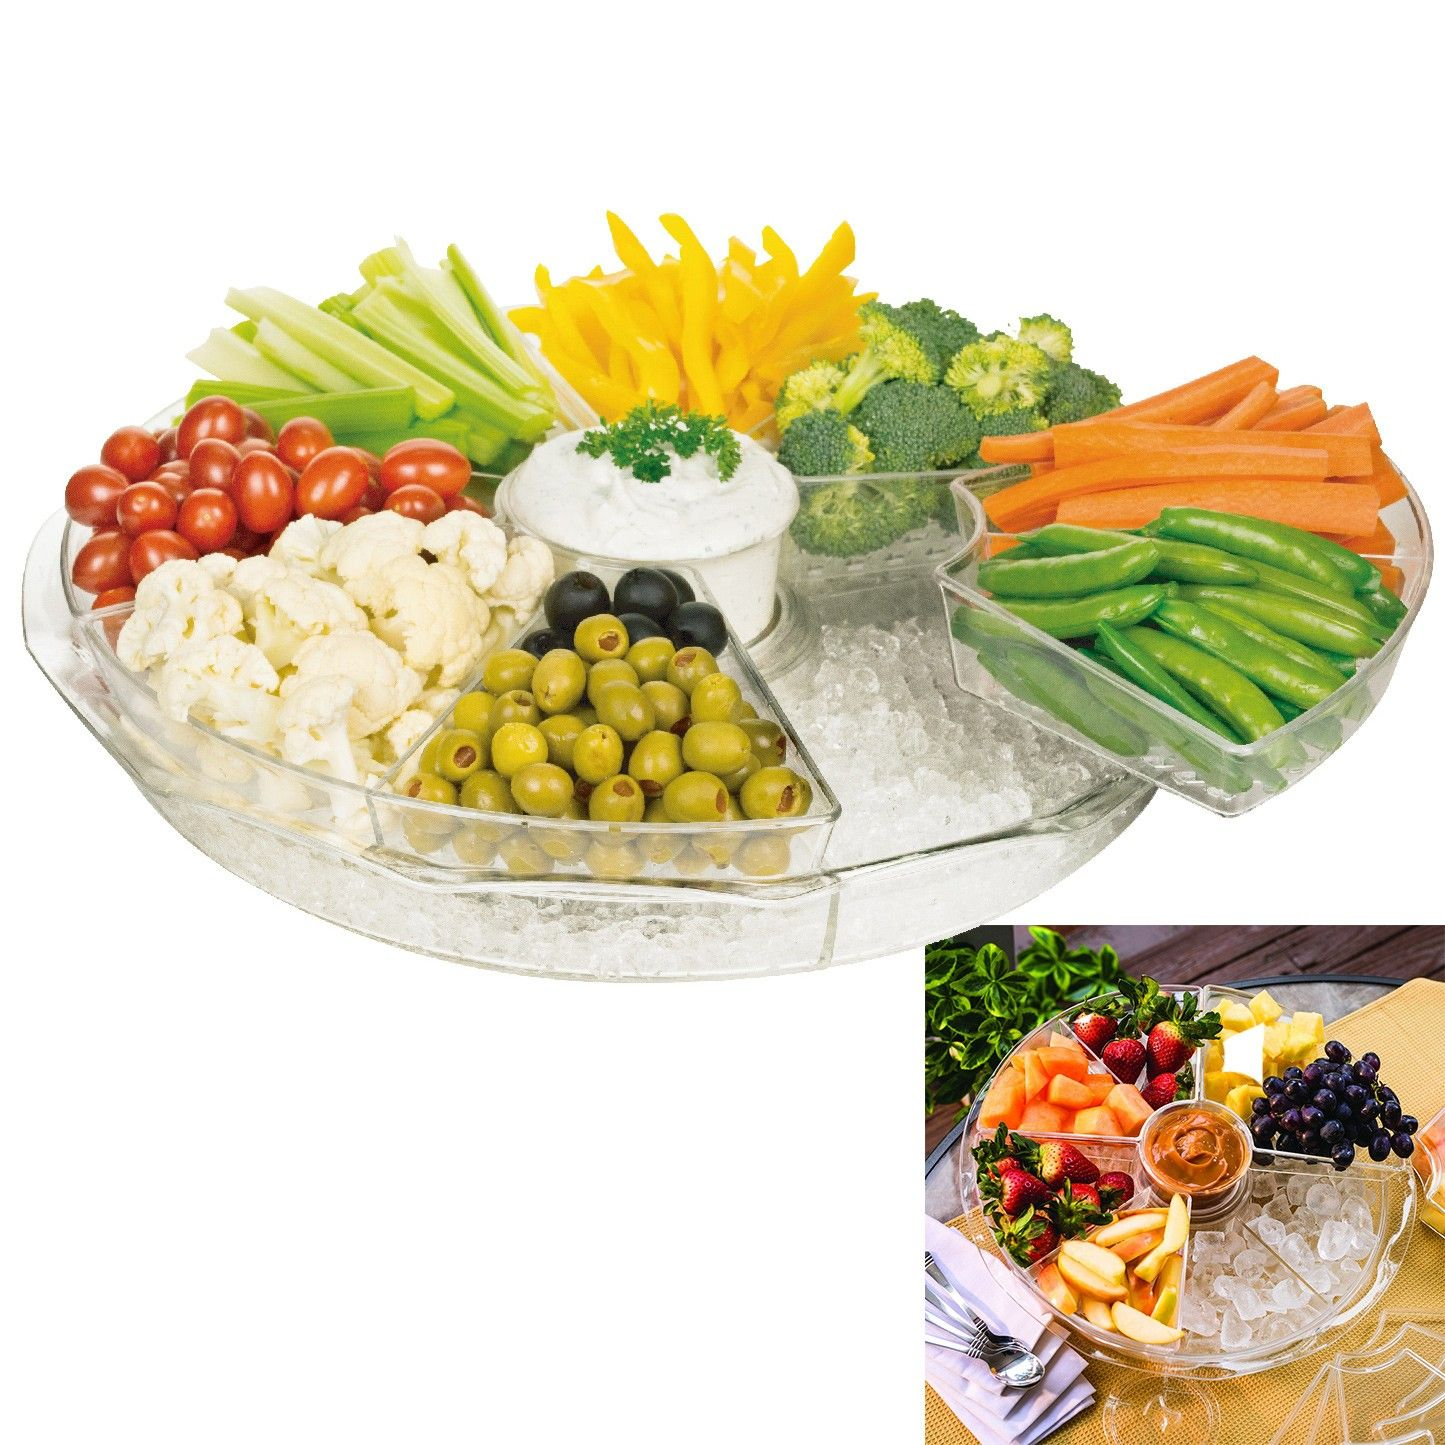 Parini Ice Chilled Divided Platter Serving Tray Appetizers On Ice With Lids